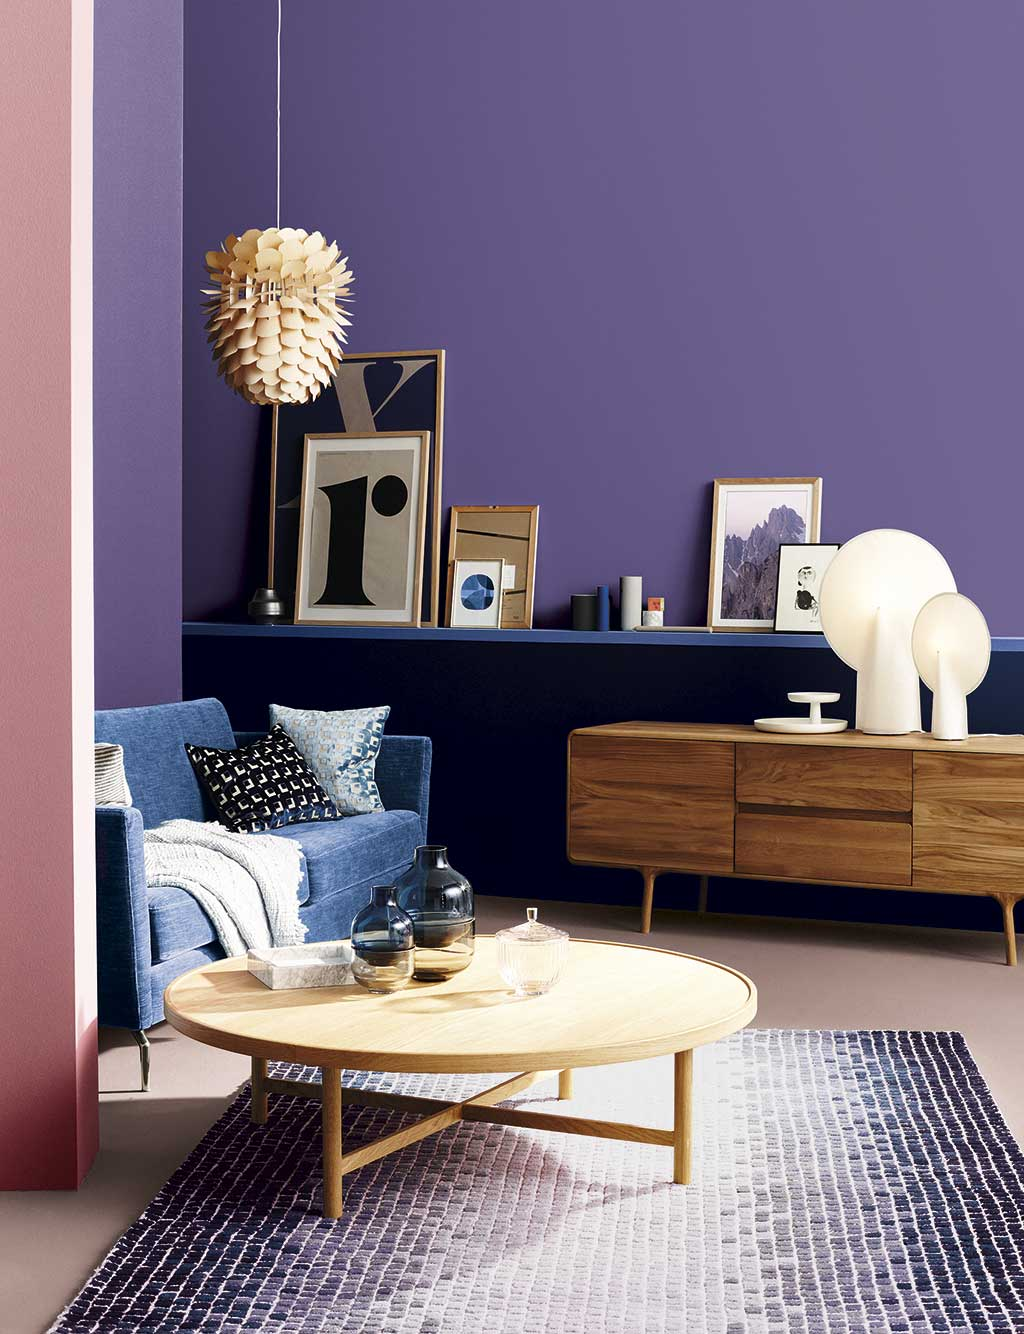 Colores para decorar 2018. Violetas.